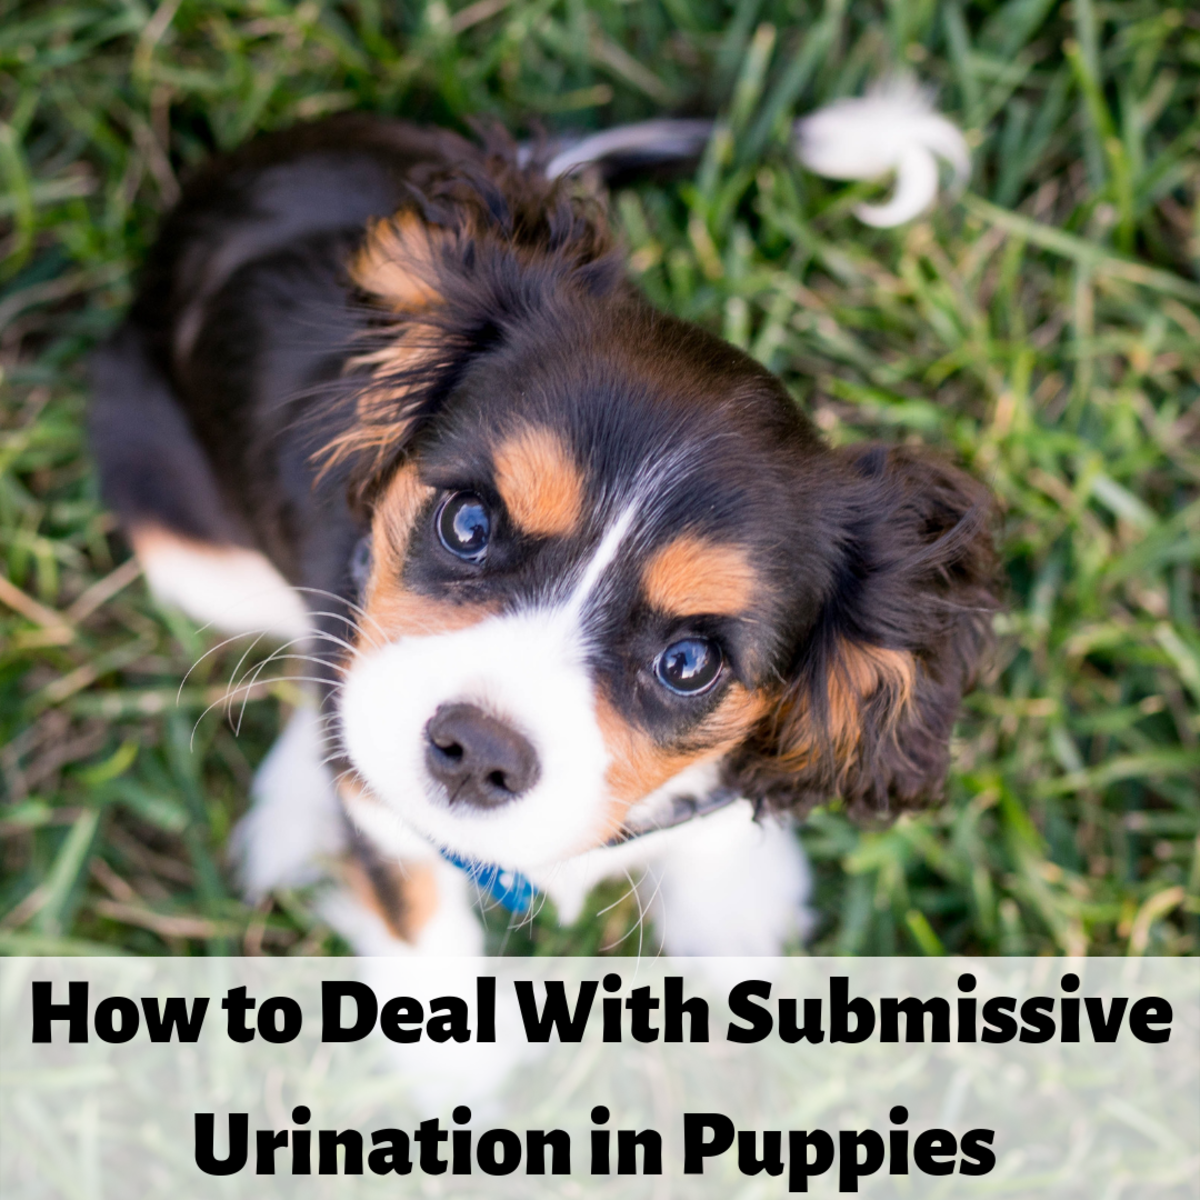 Submissive urination is common in young puppies.